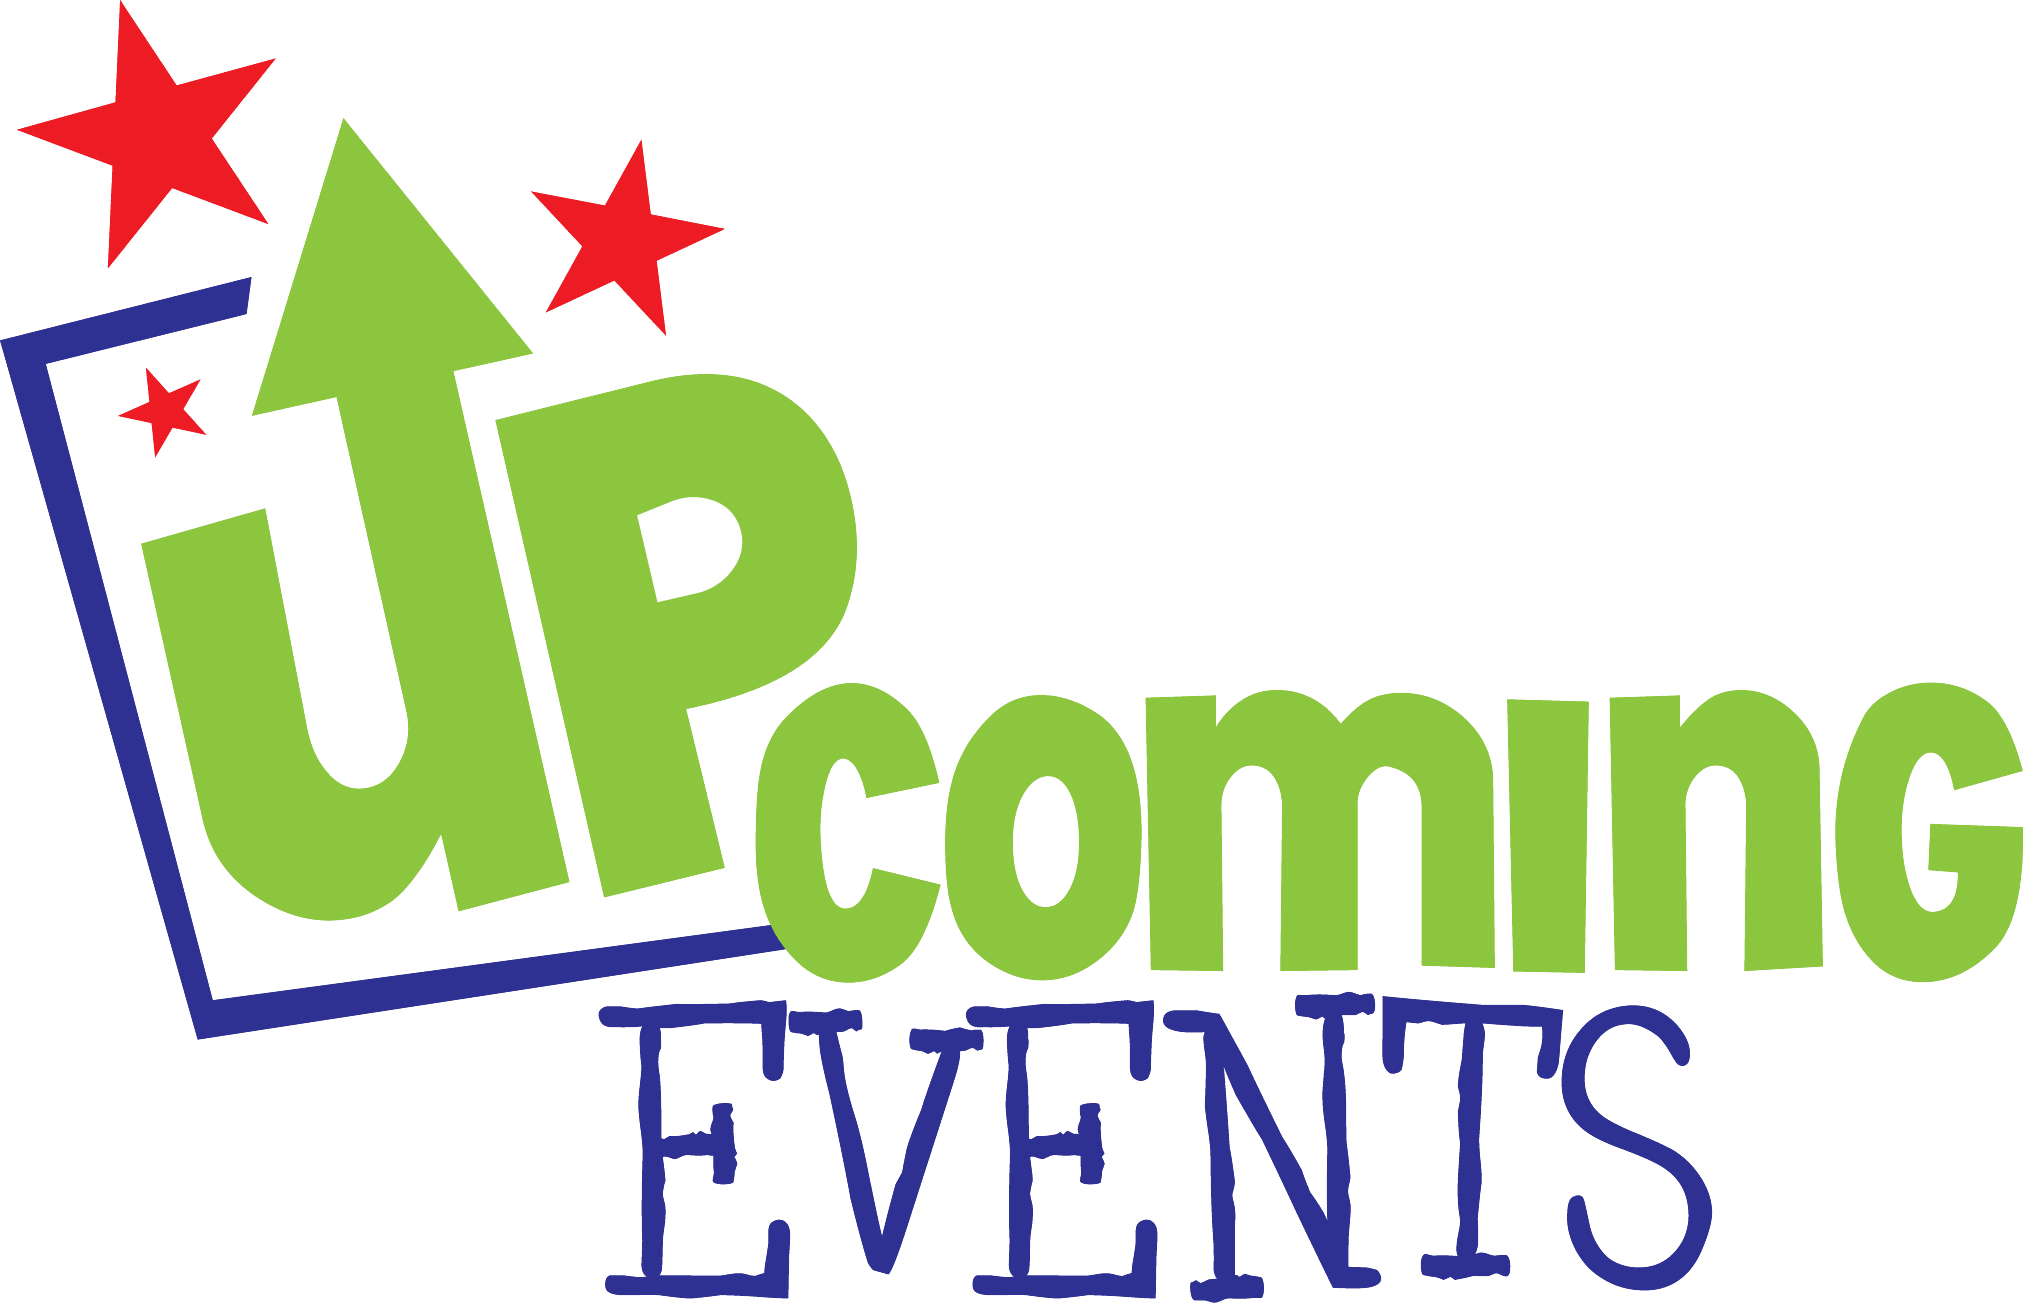 Important clipart important event. Events gallery by natasha